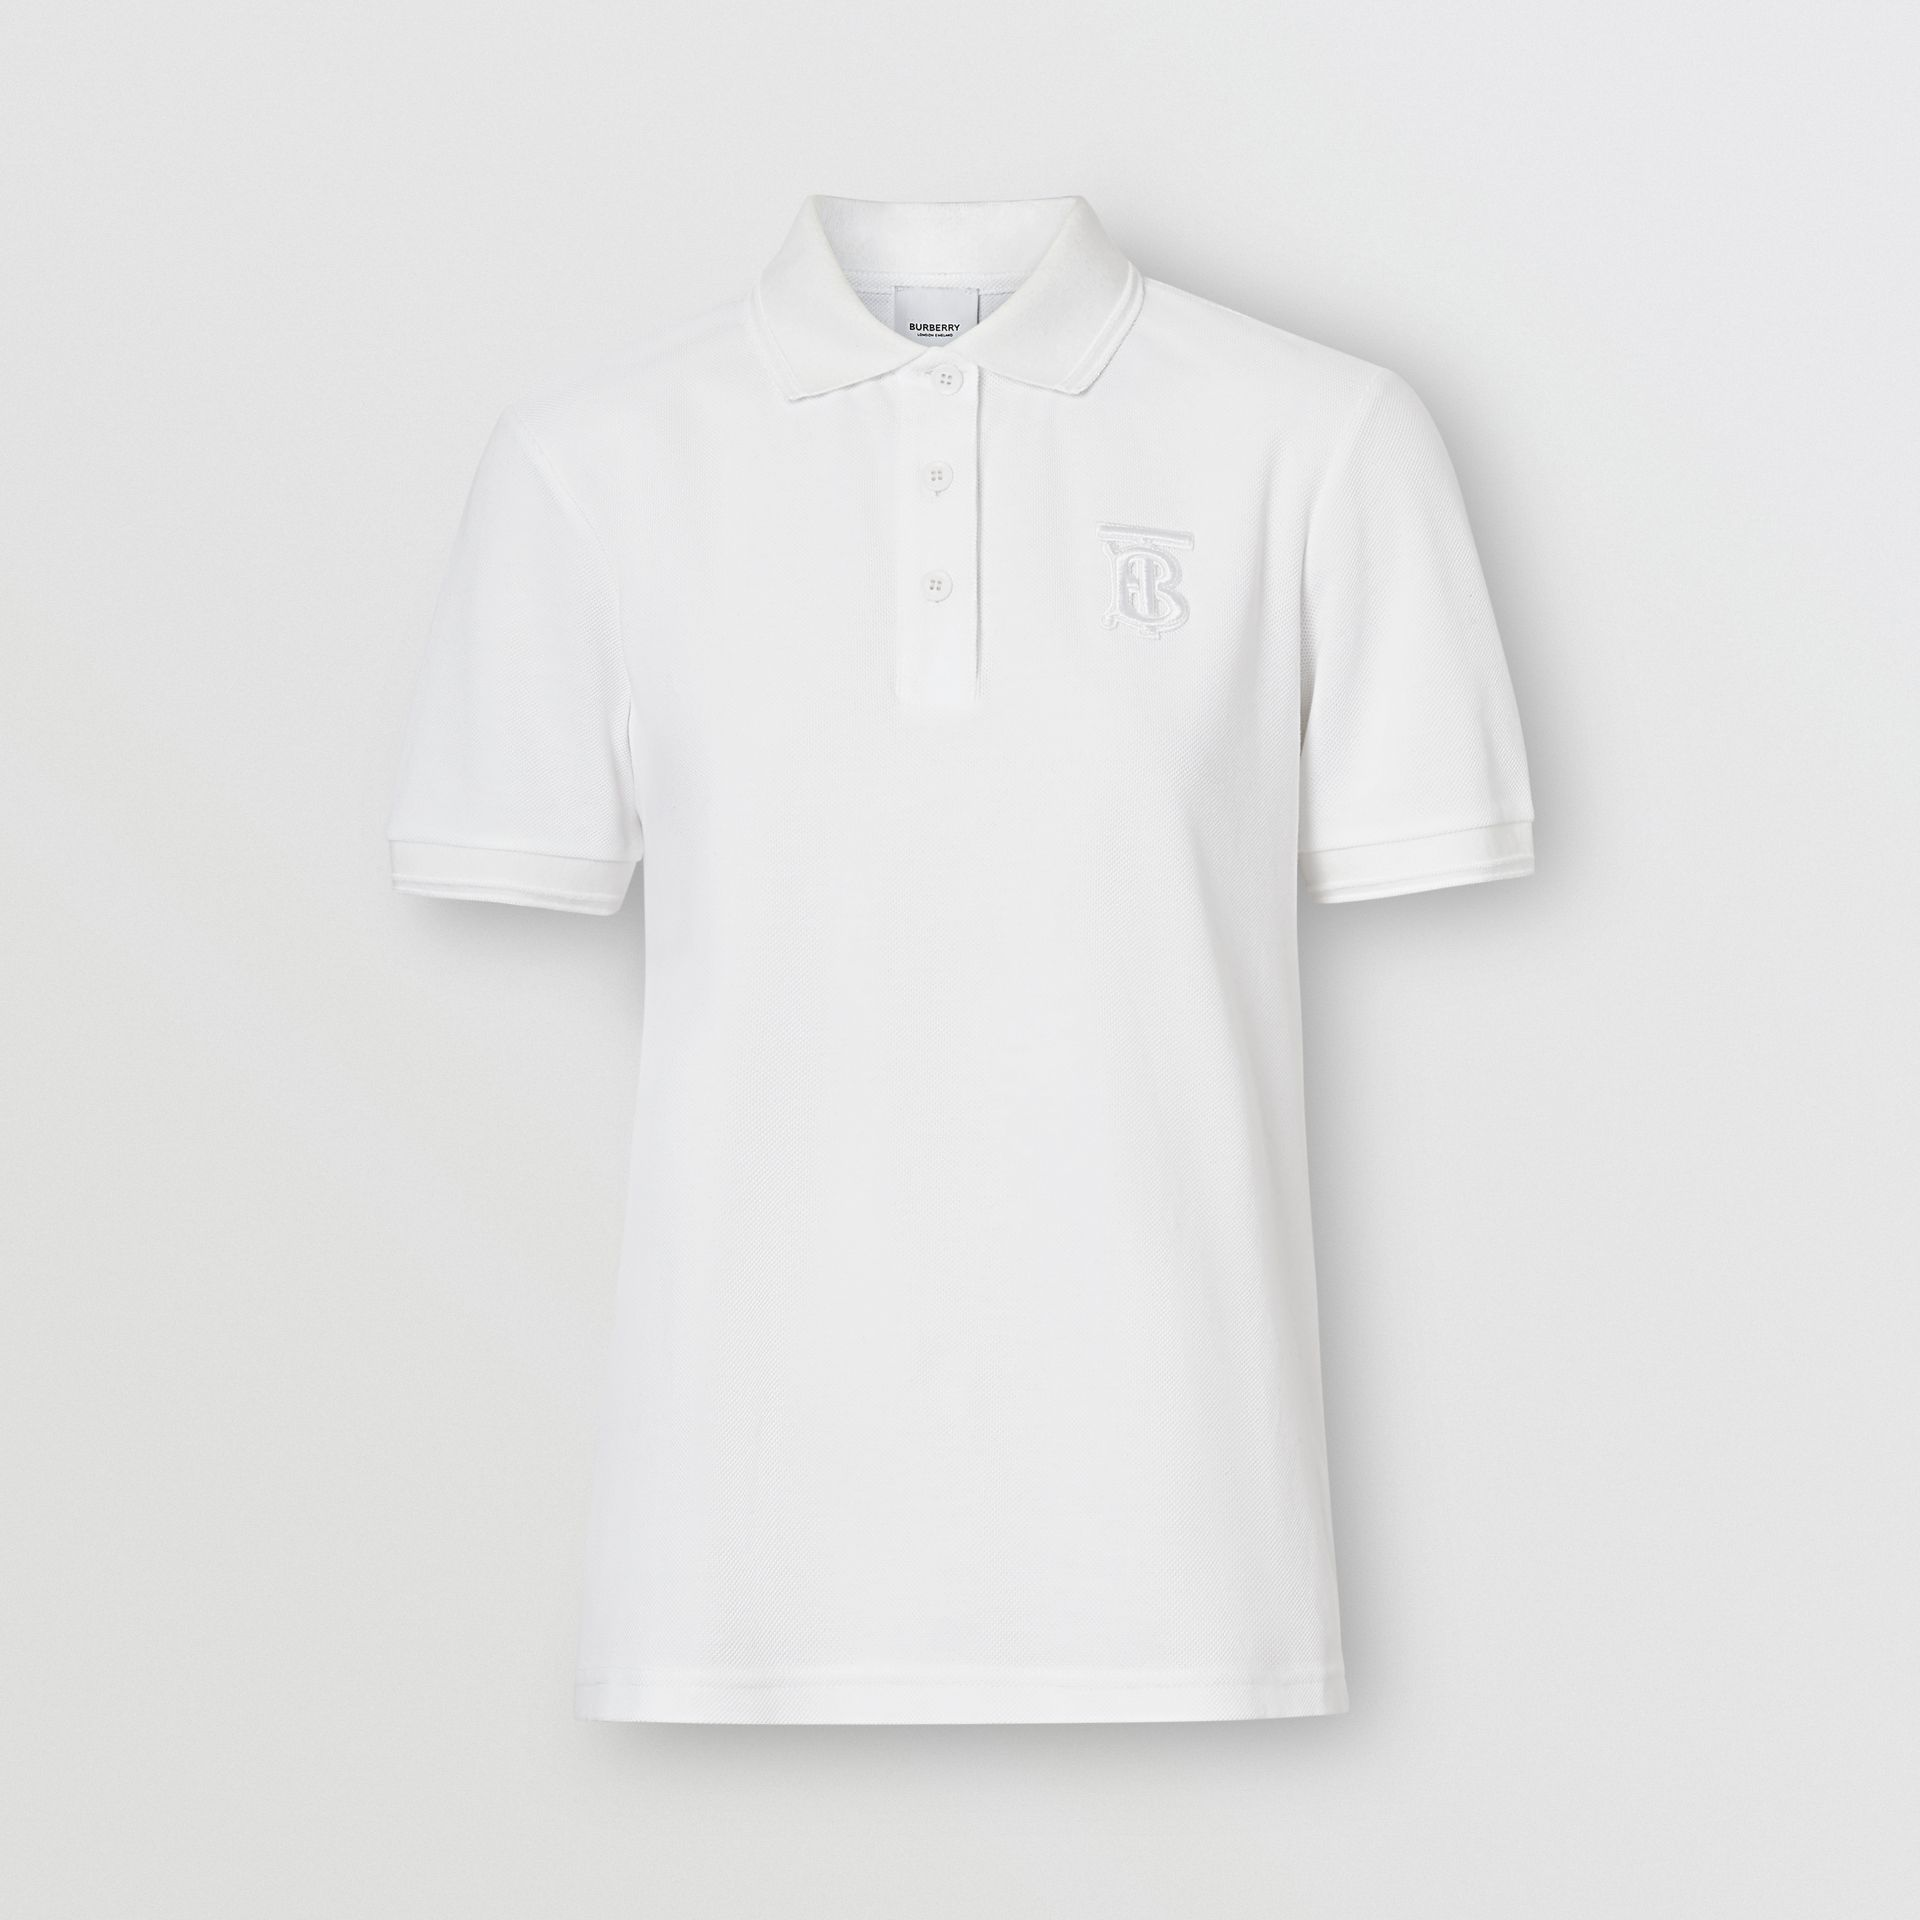 Monogram Motif Cotton Piqué Polo Shirt in White - Women | Burberry - gallery image 3